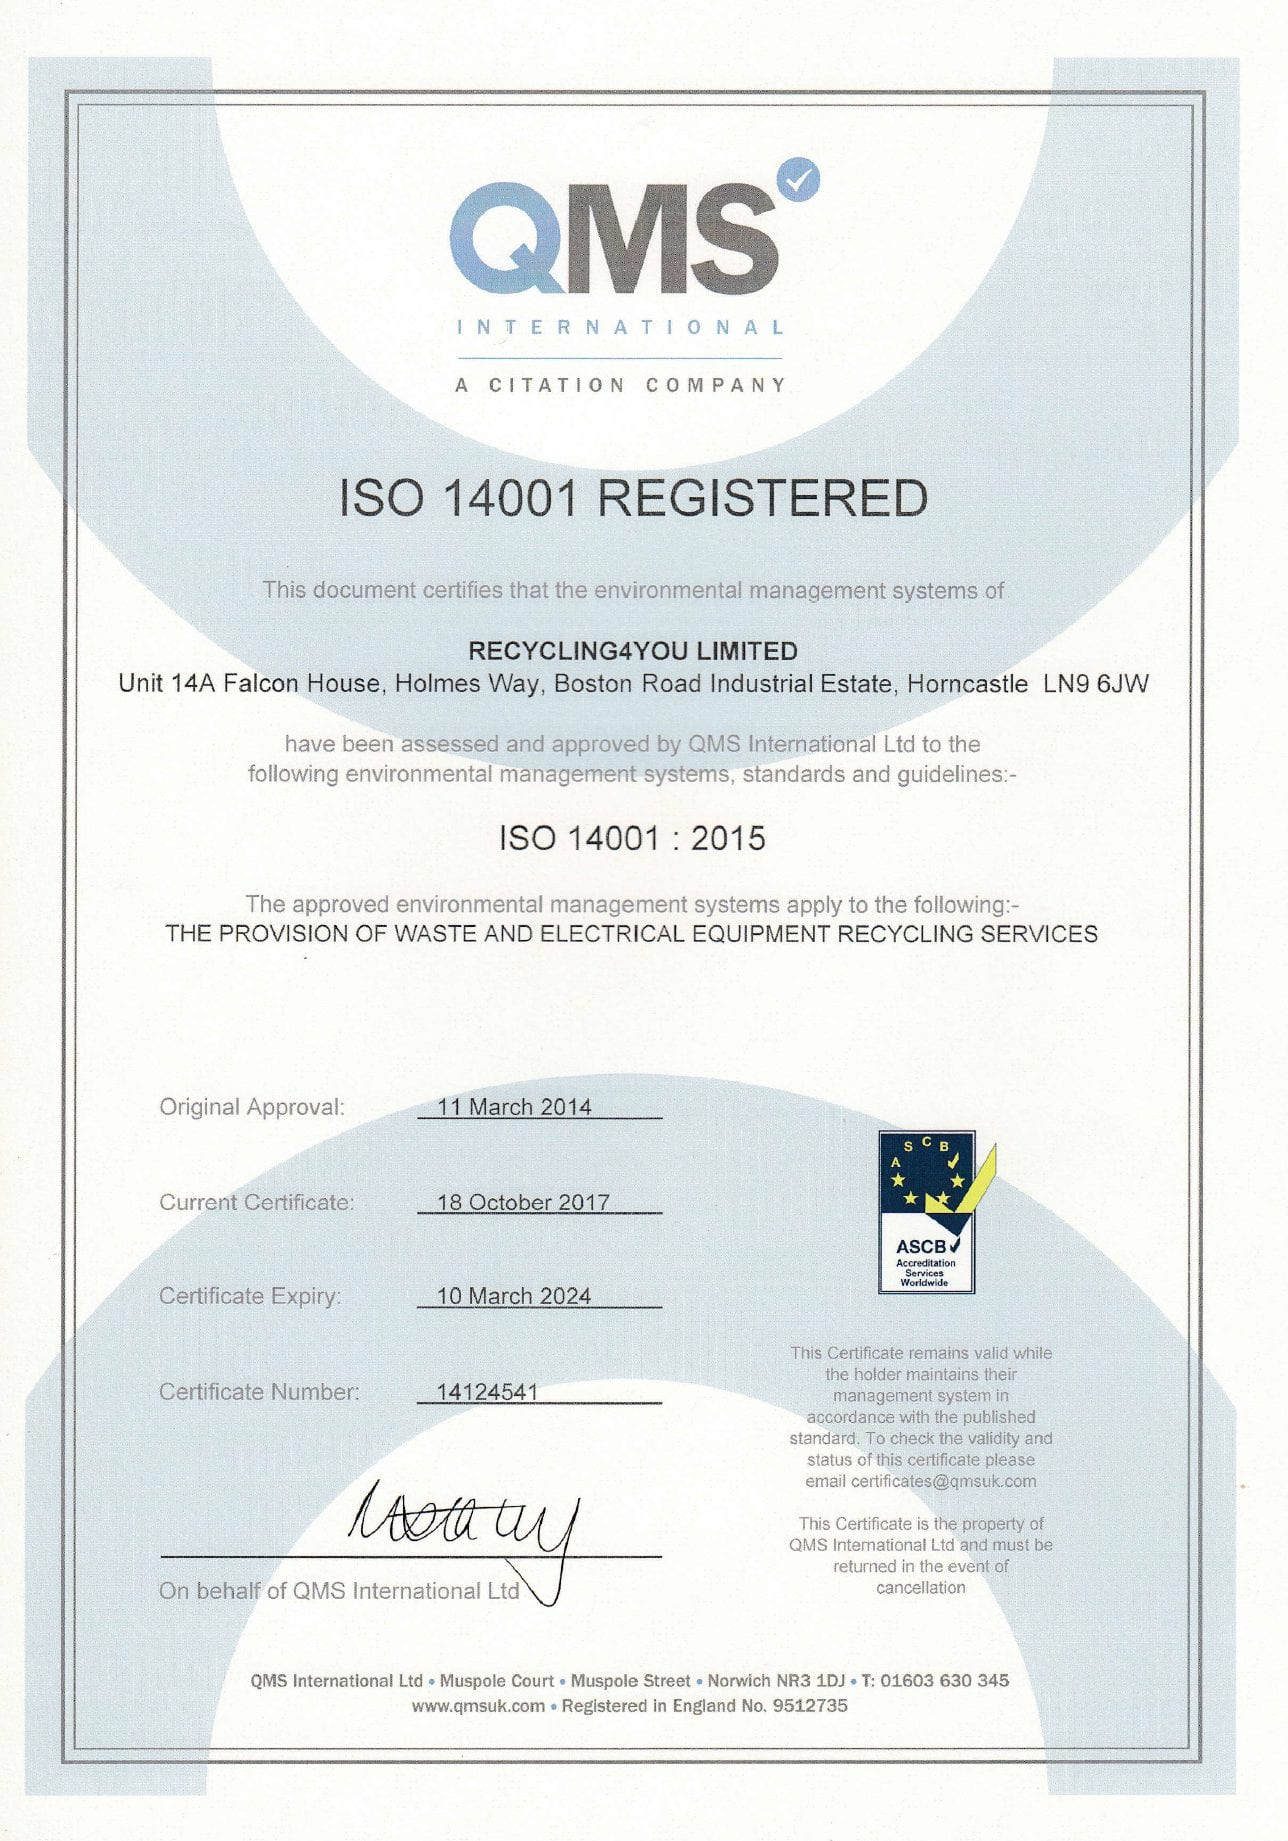 ISO 14001 Registered - Recycling4You